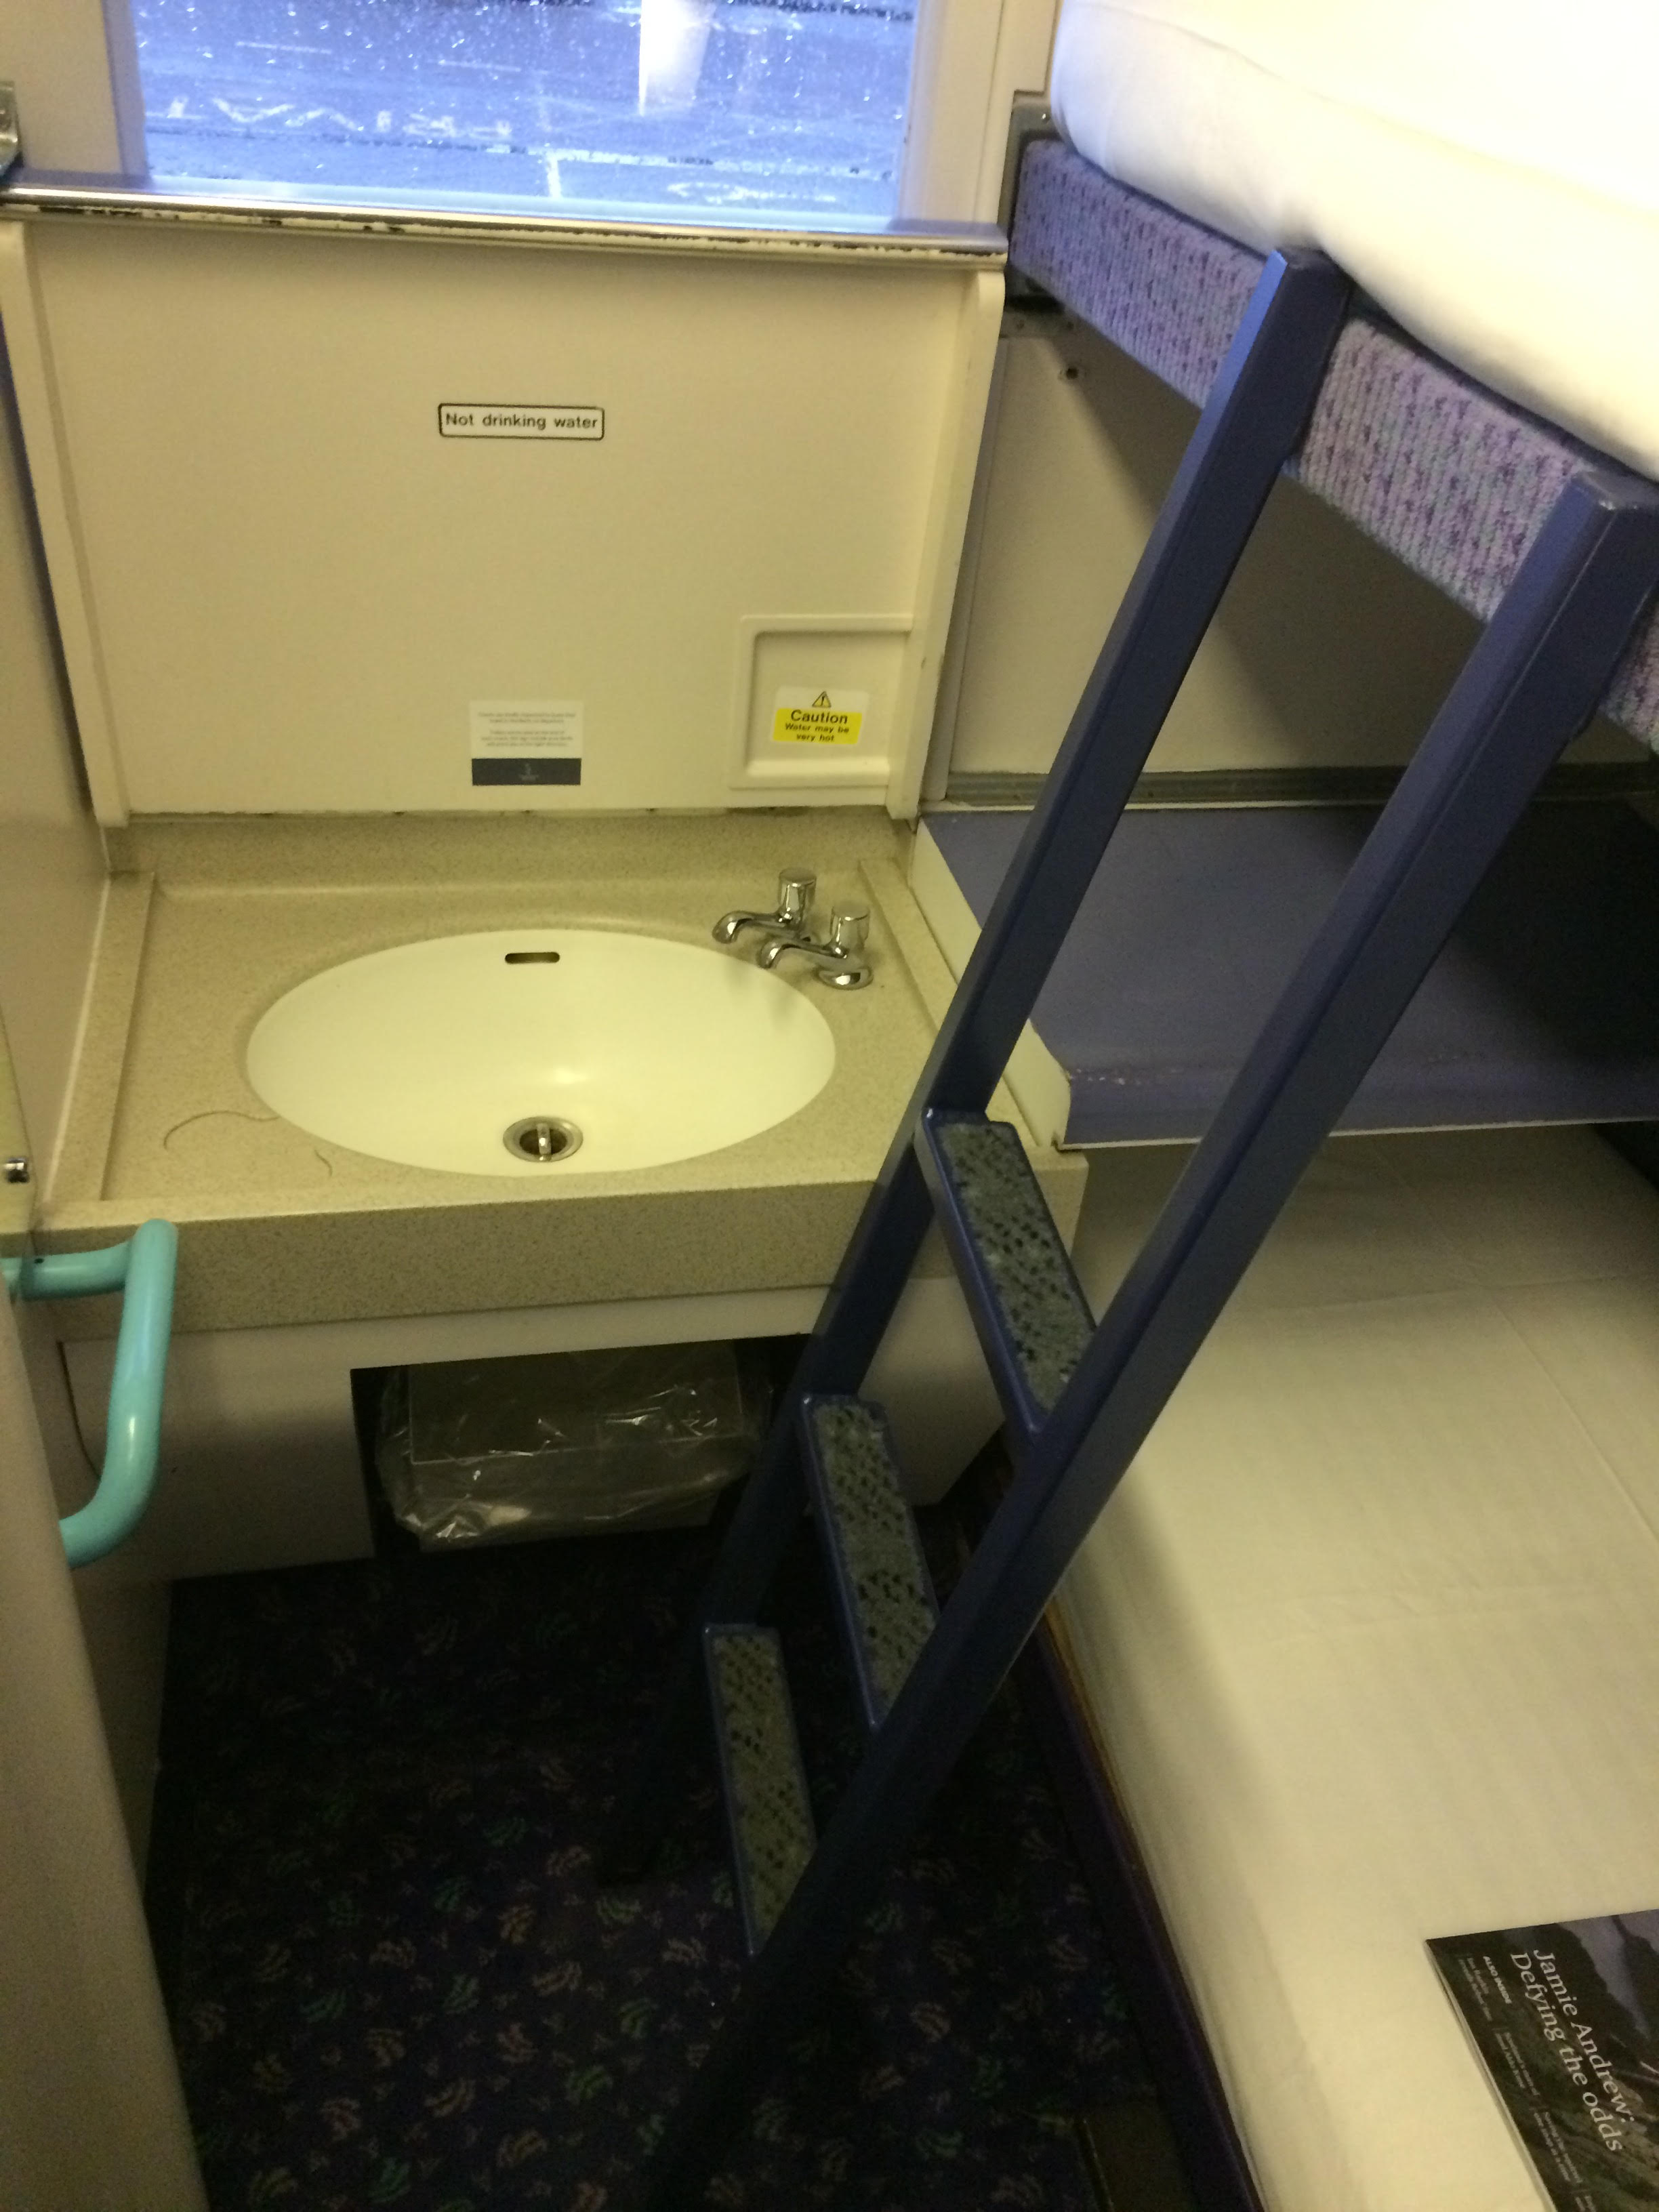 Wastafeltje in de slaapwagons van de Caledonian Sleeper ©Noord West Express